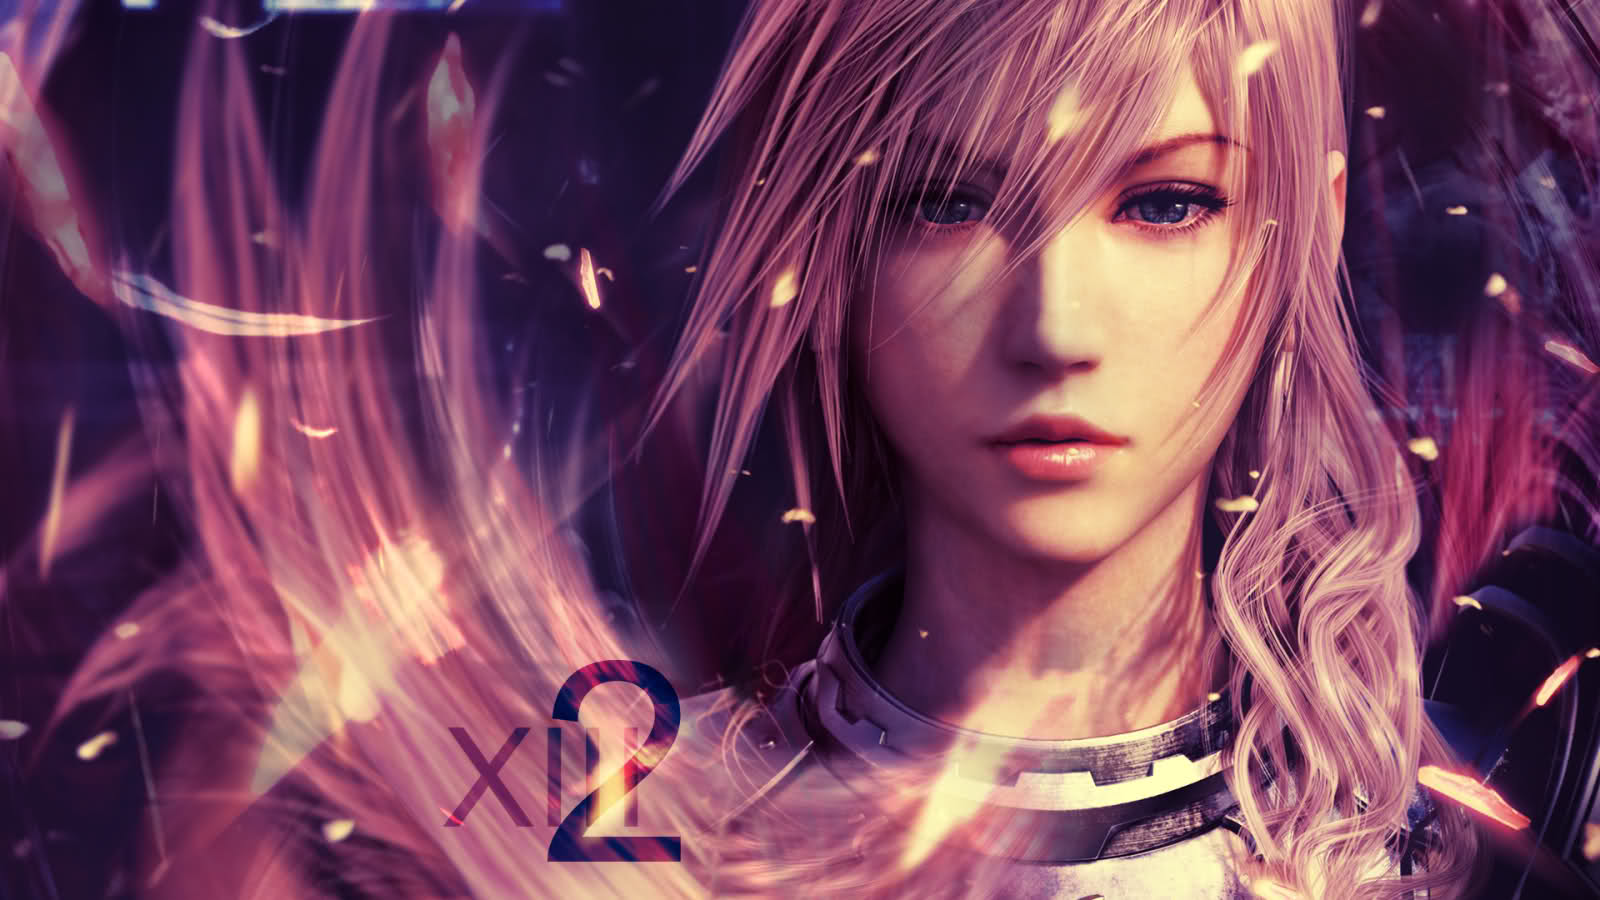 Final fantasy xiii 2 wallpaper and background image 1600x900 video game final fantasy xiii 2 final fantasy lightning final fantasy wallpaper voltagebd Choice Image